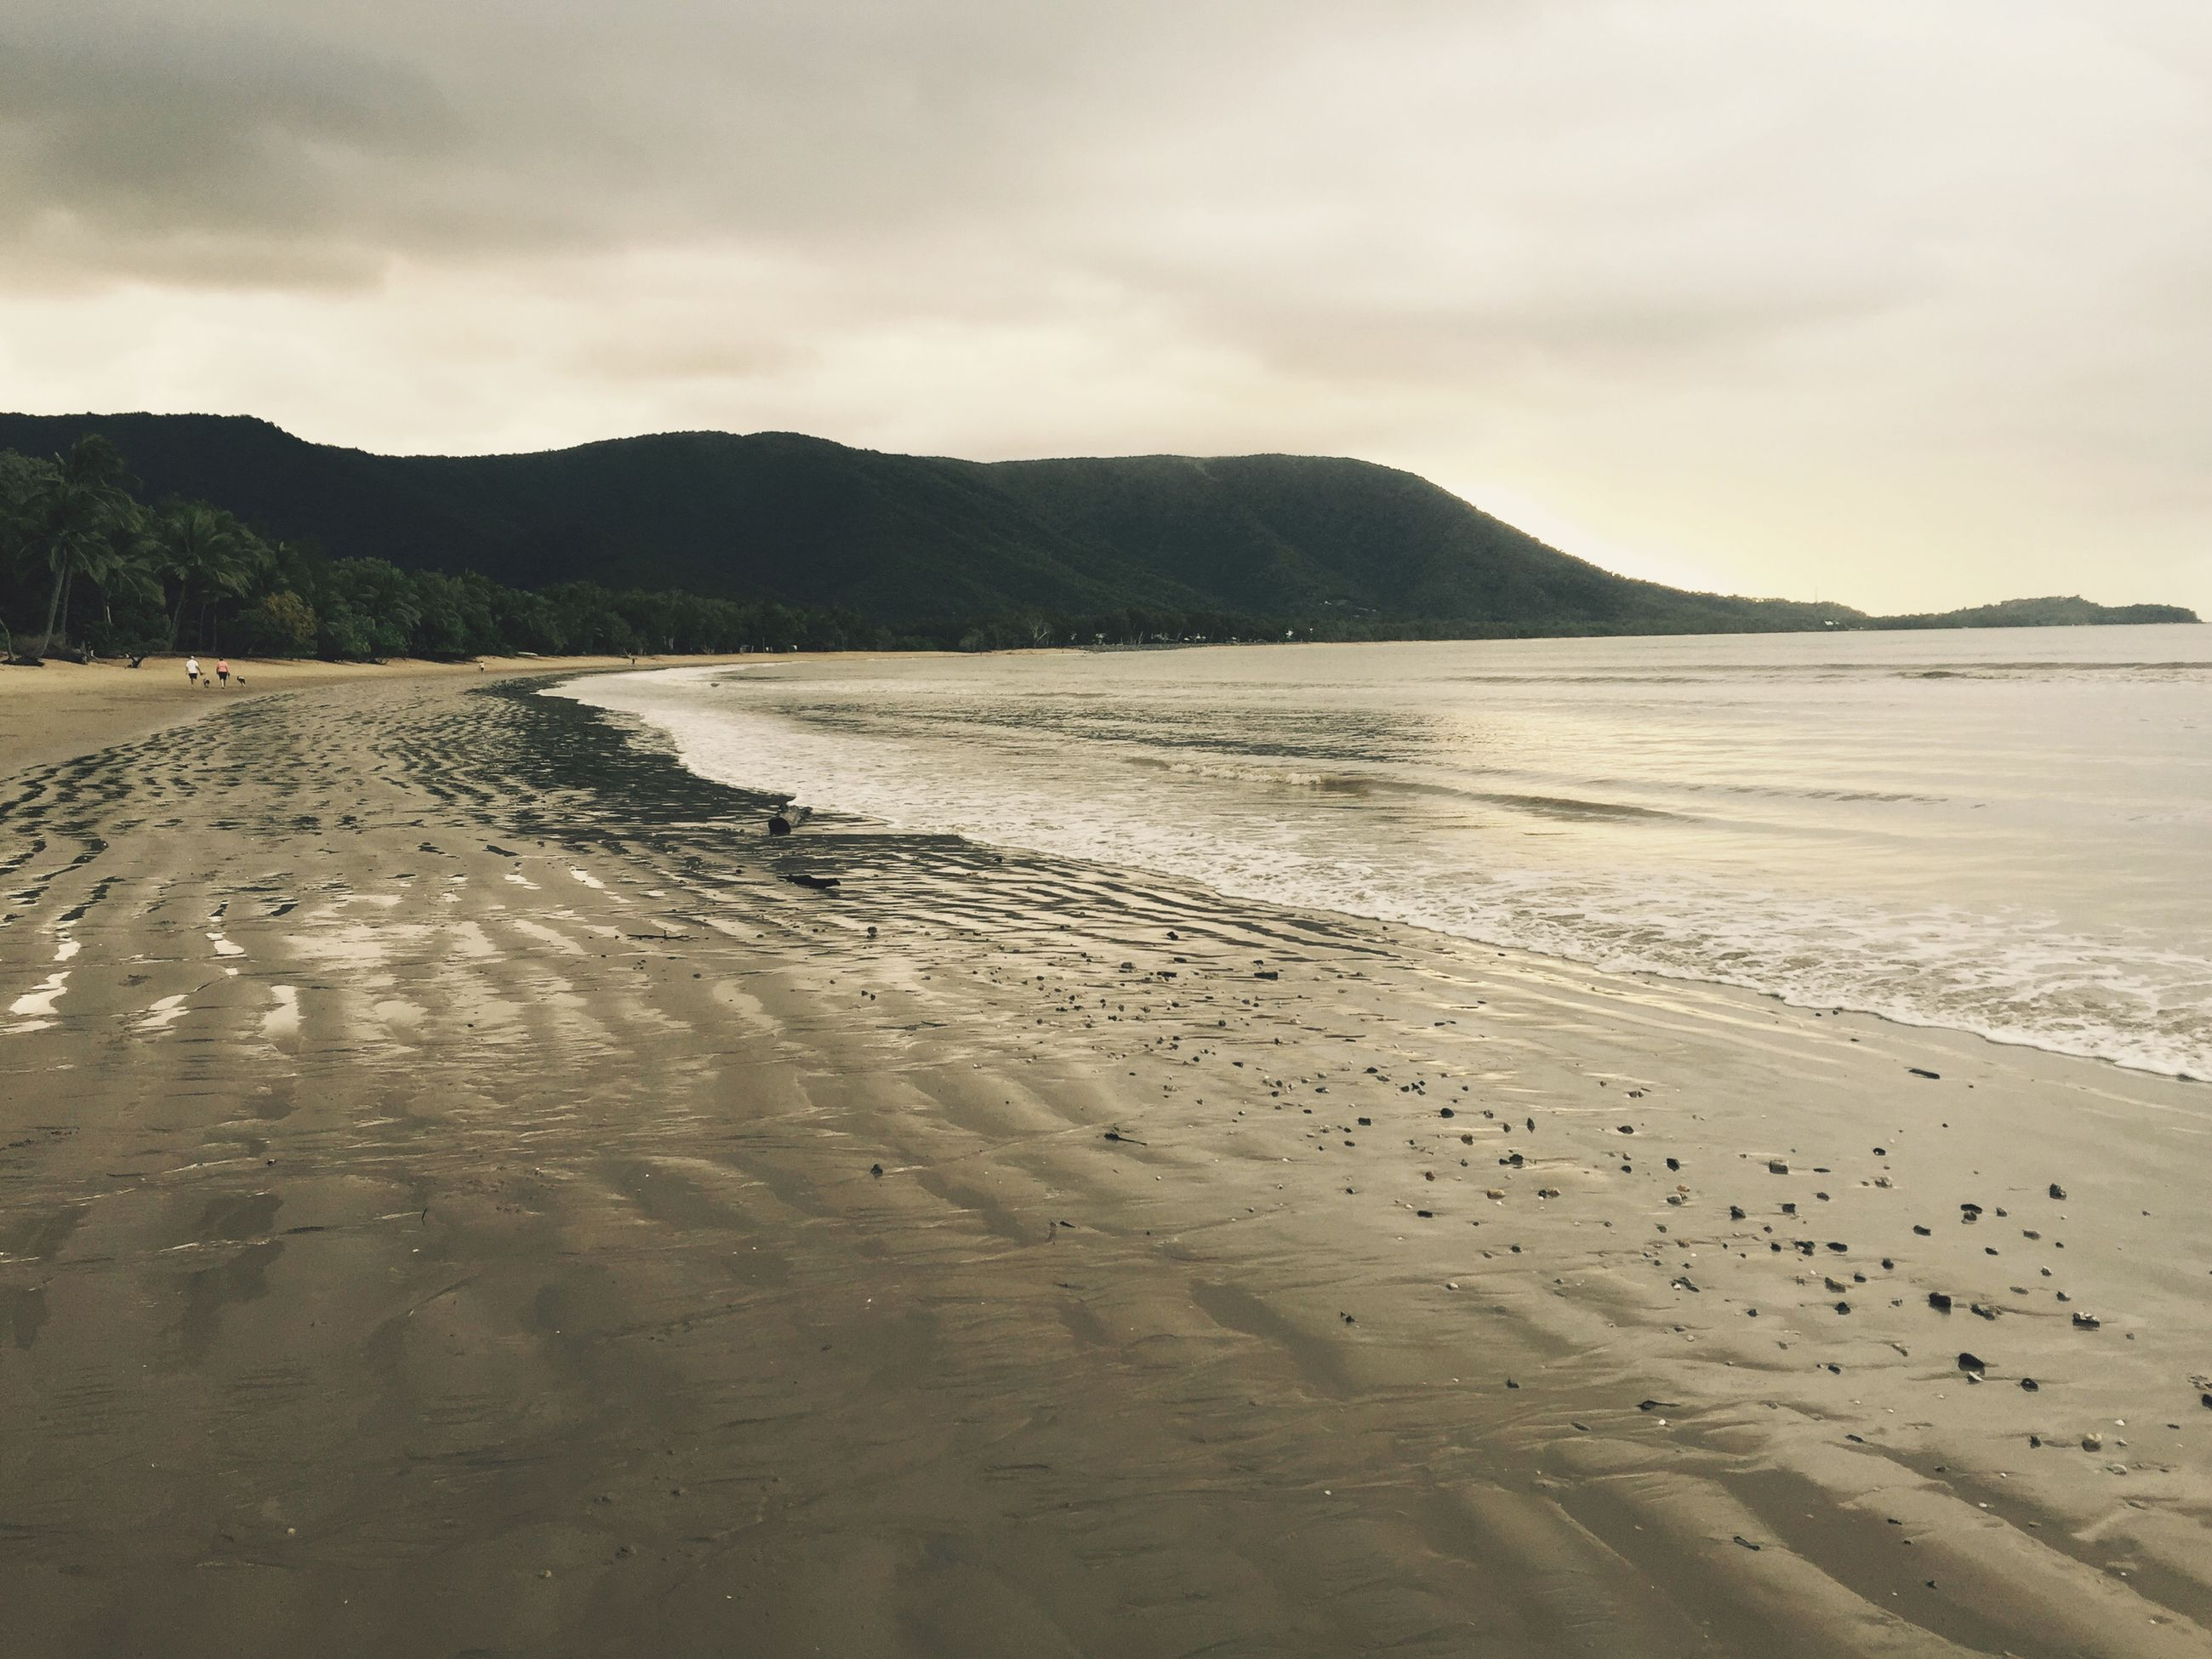 beach, sand, sky, water, sea, tranquil scene, shore, scenics, tranquility, beauty in nature, nature, cloud - sky, mountain, coastline, cloudy, footprint, idyllic, cloud, remote, incidental people